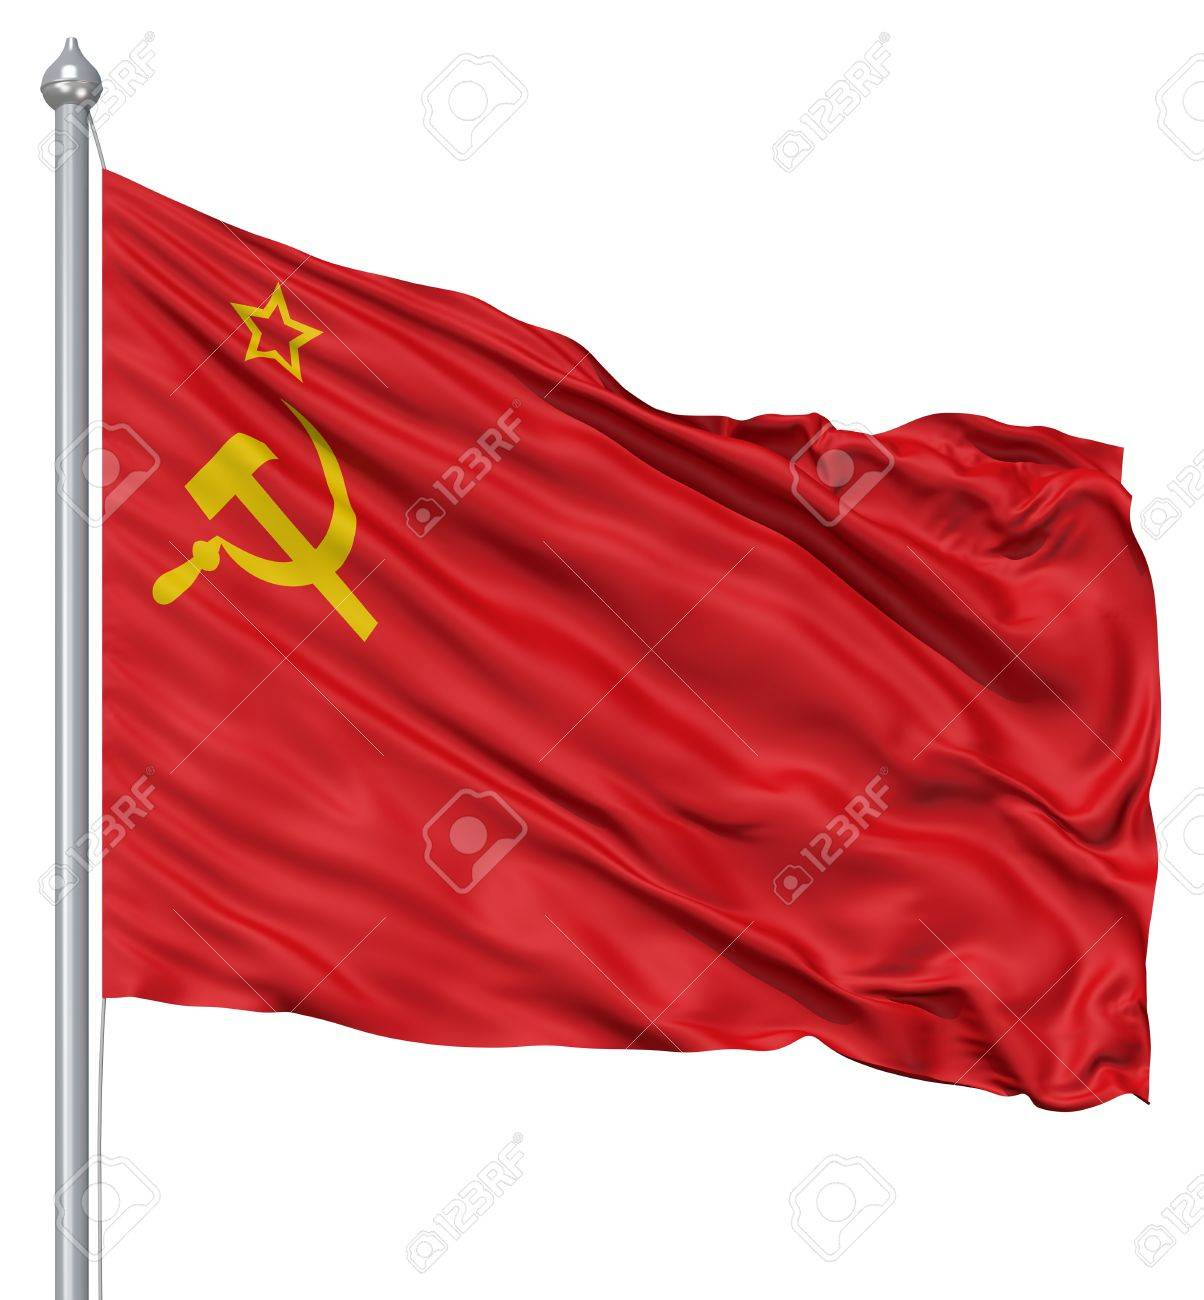 red flag stock photos royalty free red flag images and pictures